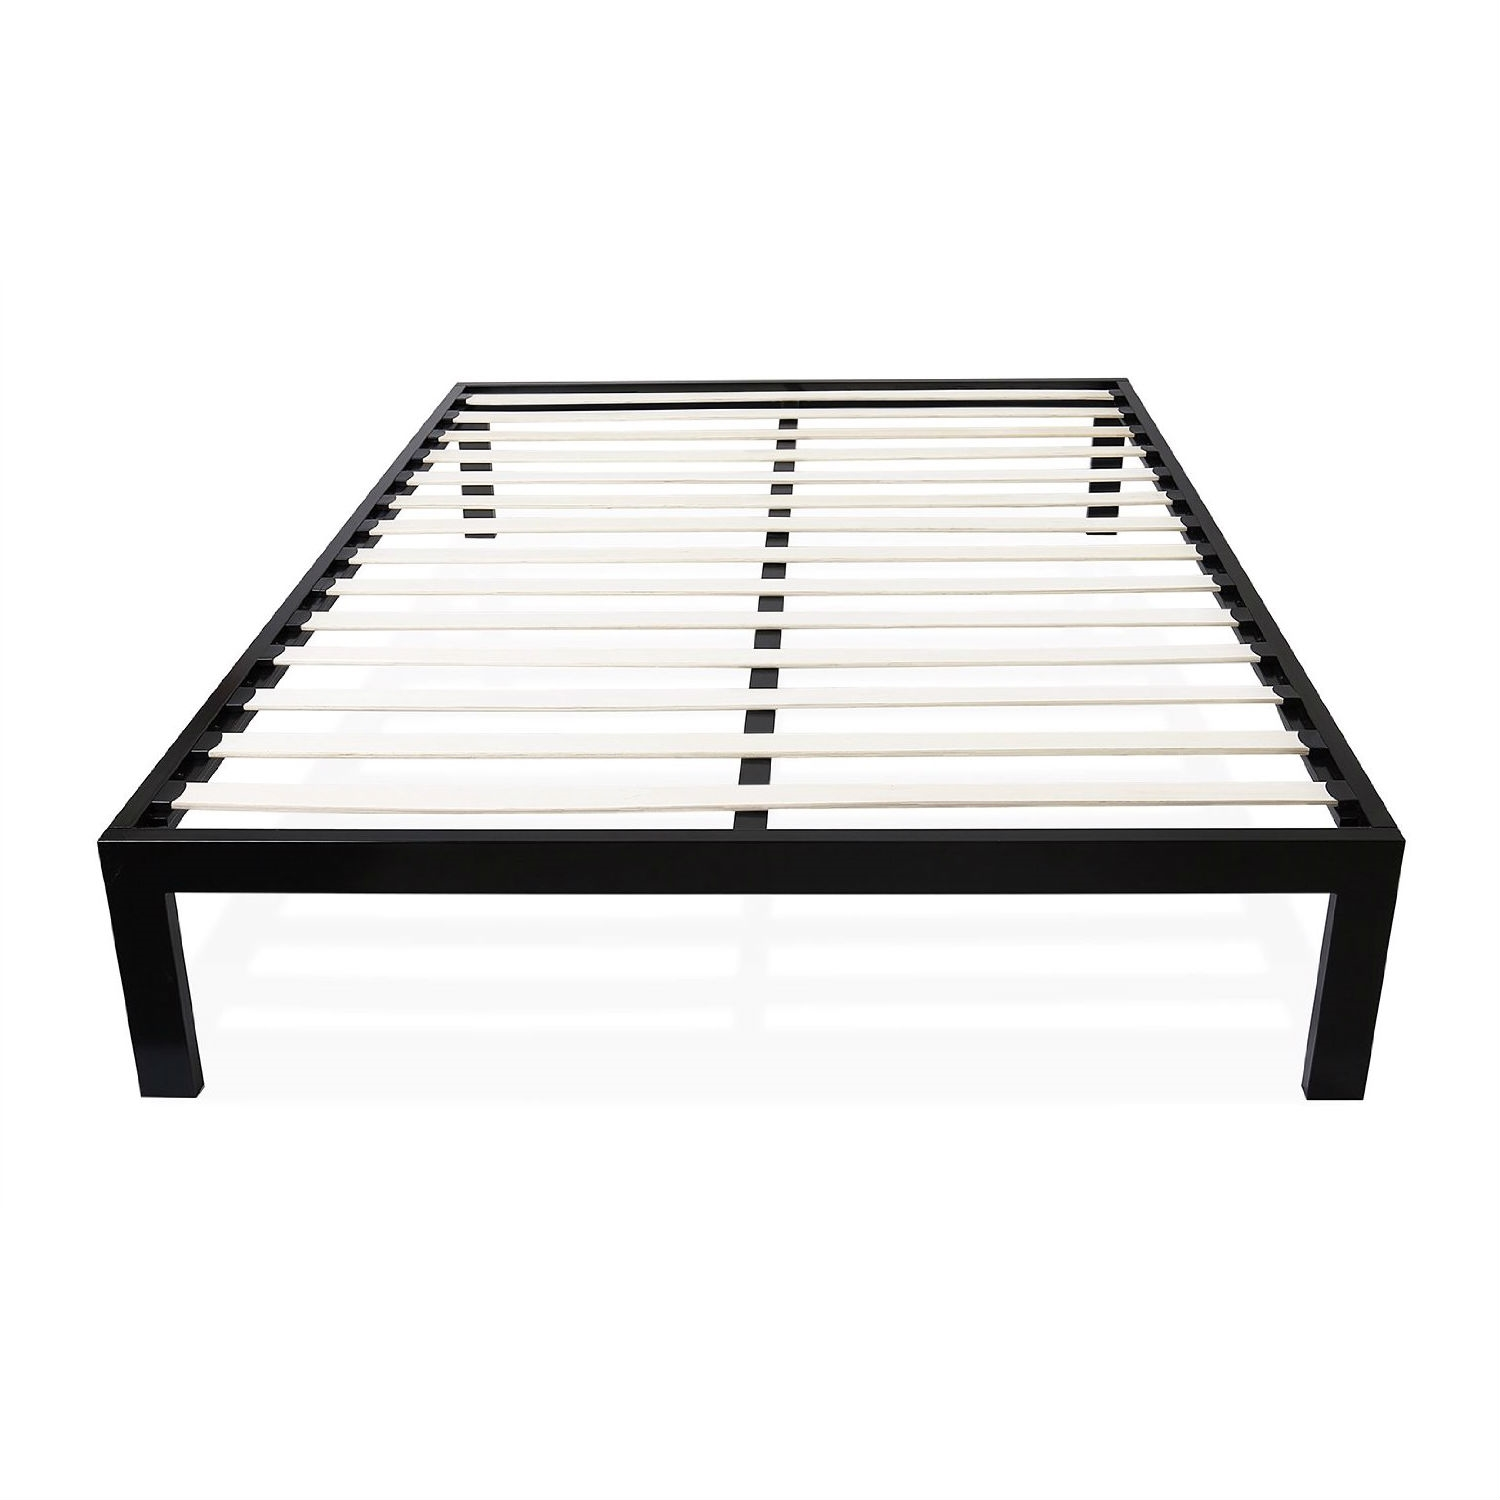 Wooden Bed Frame With Slats